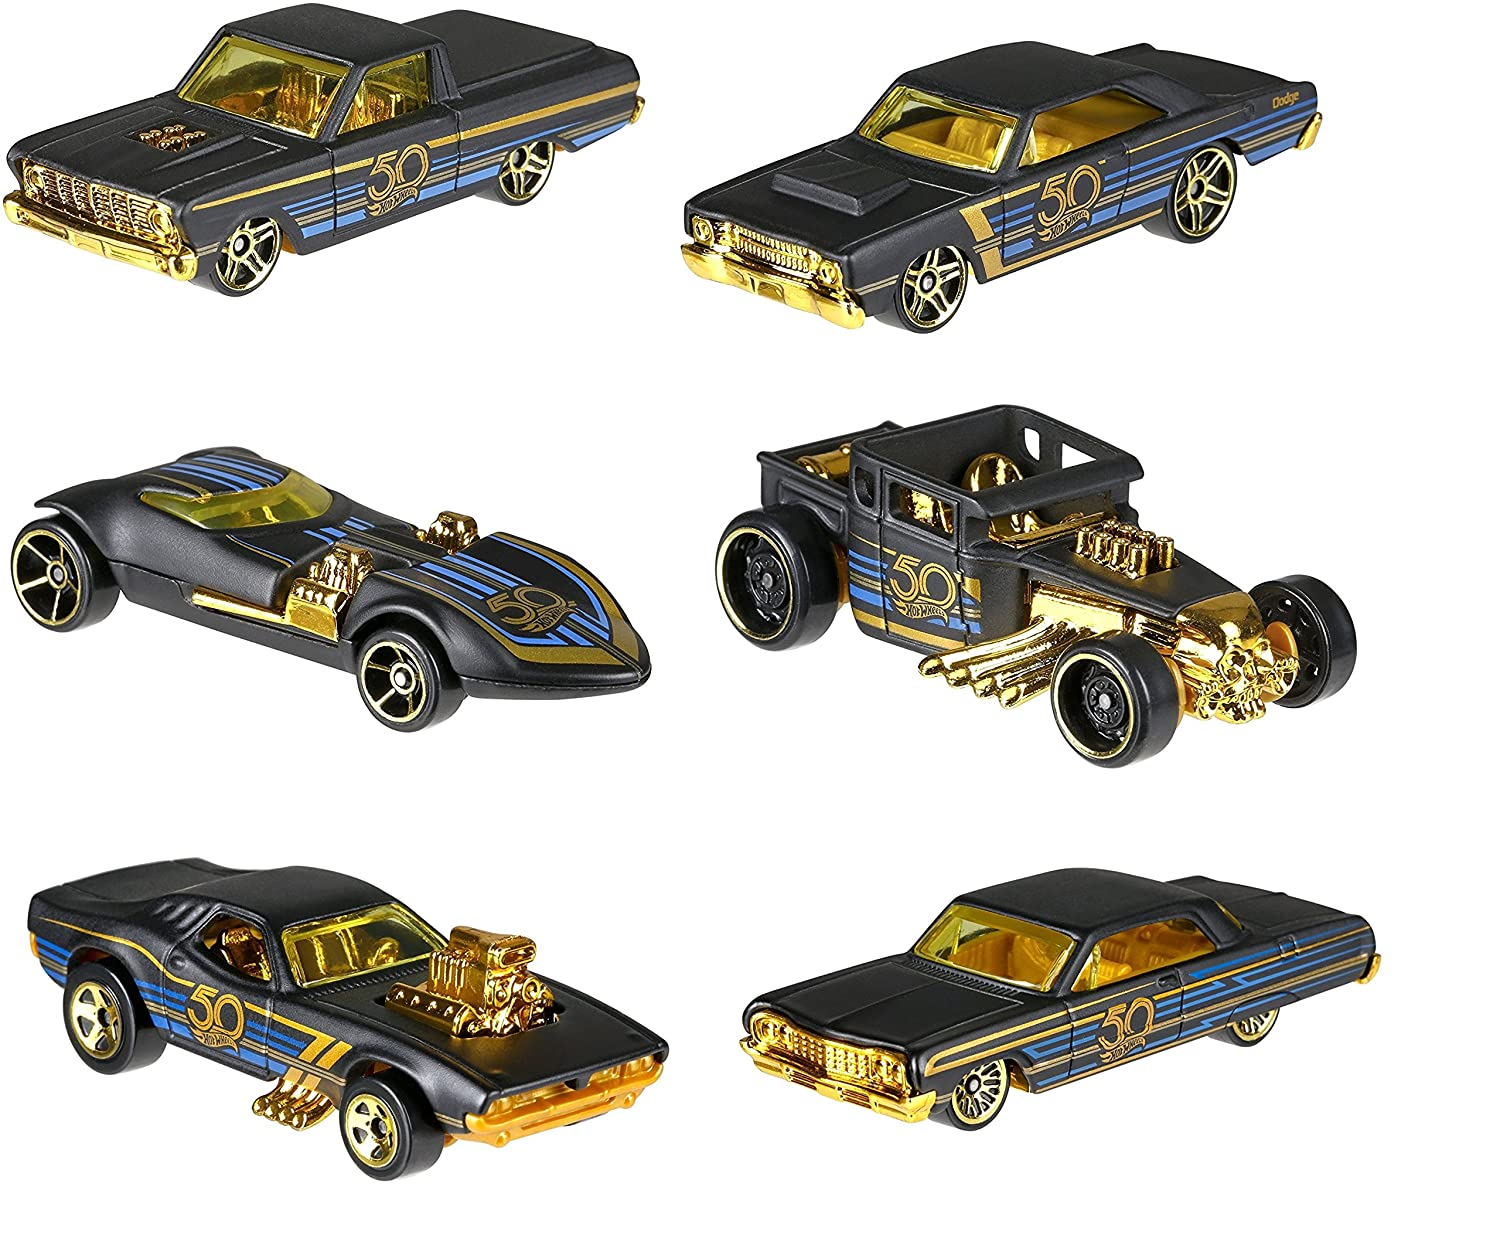 New 1 64 Hot Wheels 50th Anniversary Black Gold Collection Bone Shaker Twin Mill Rodger Dodger Dodge Dart Impala Ford Ranchero Set of 6pcs Diecast Model Car By HotWheels